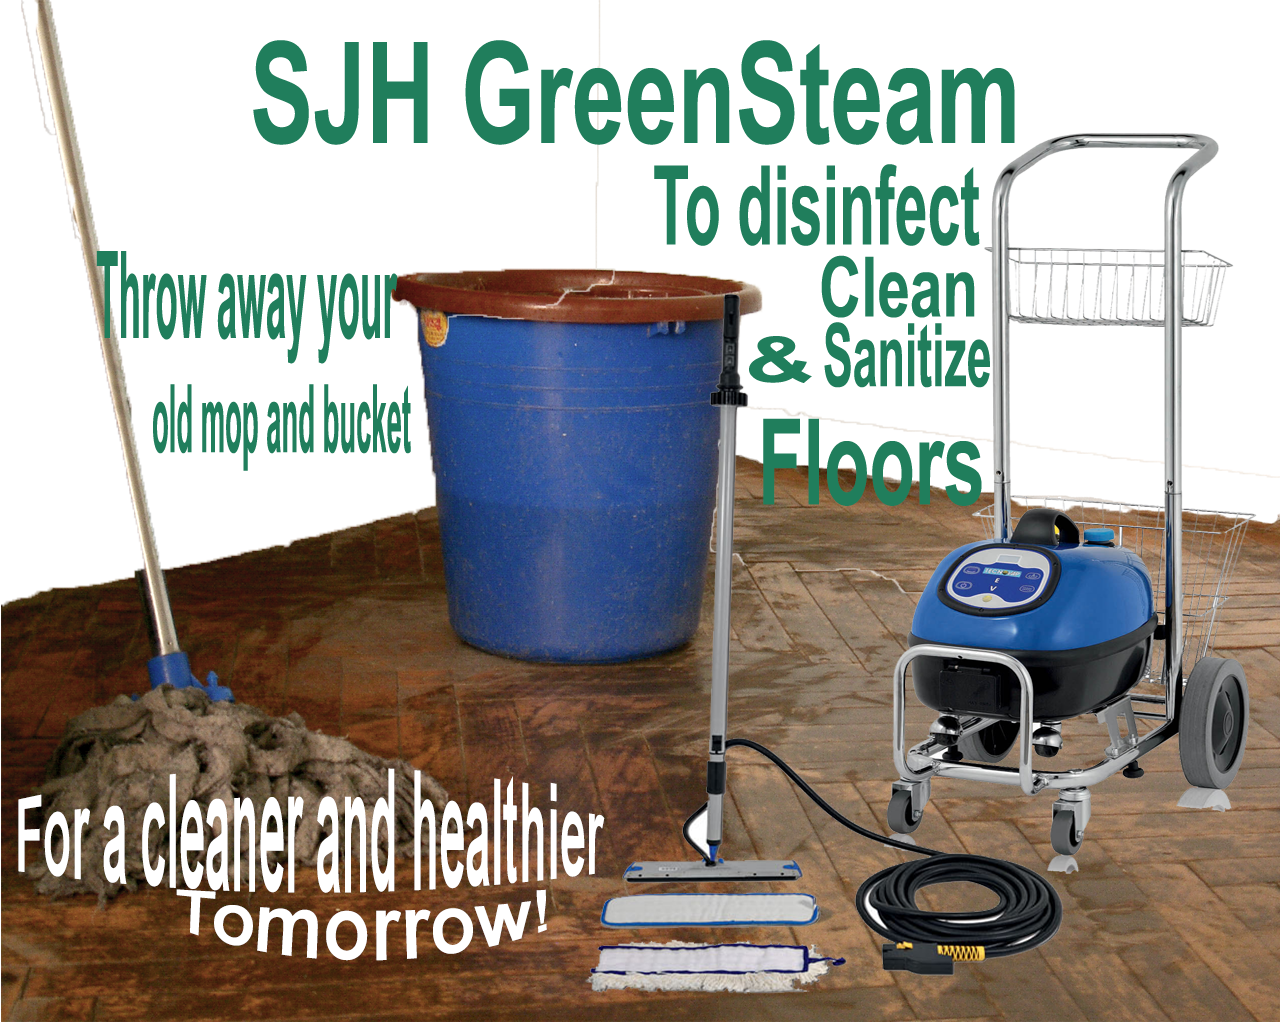 Washing your floor with dirty water, will never disinfect, clean and sanitize, the way vapor steam will.